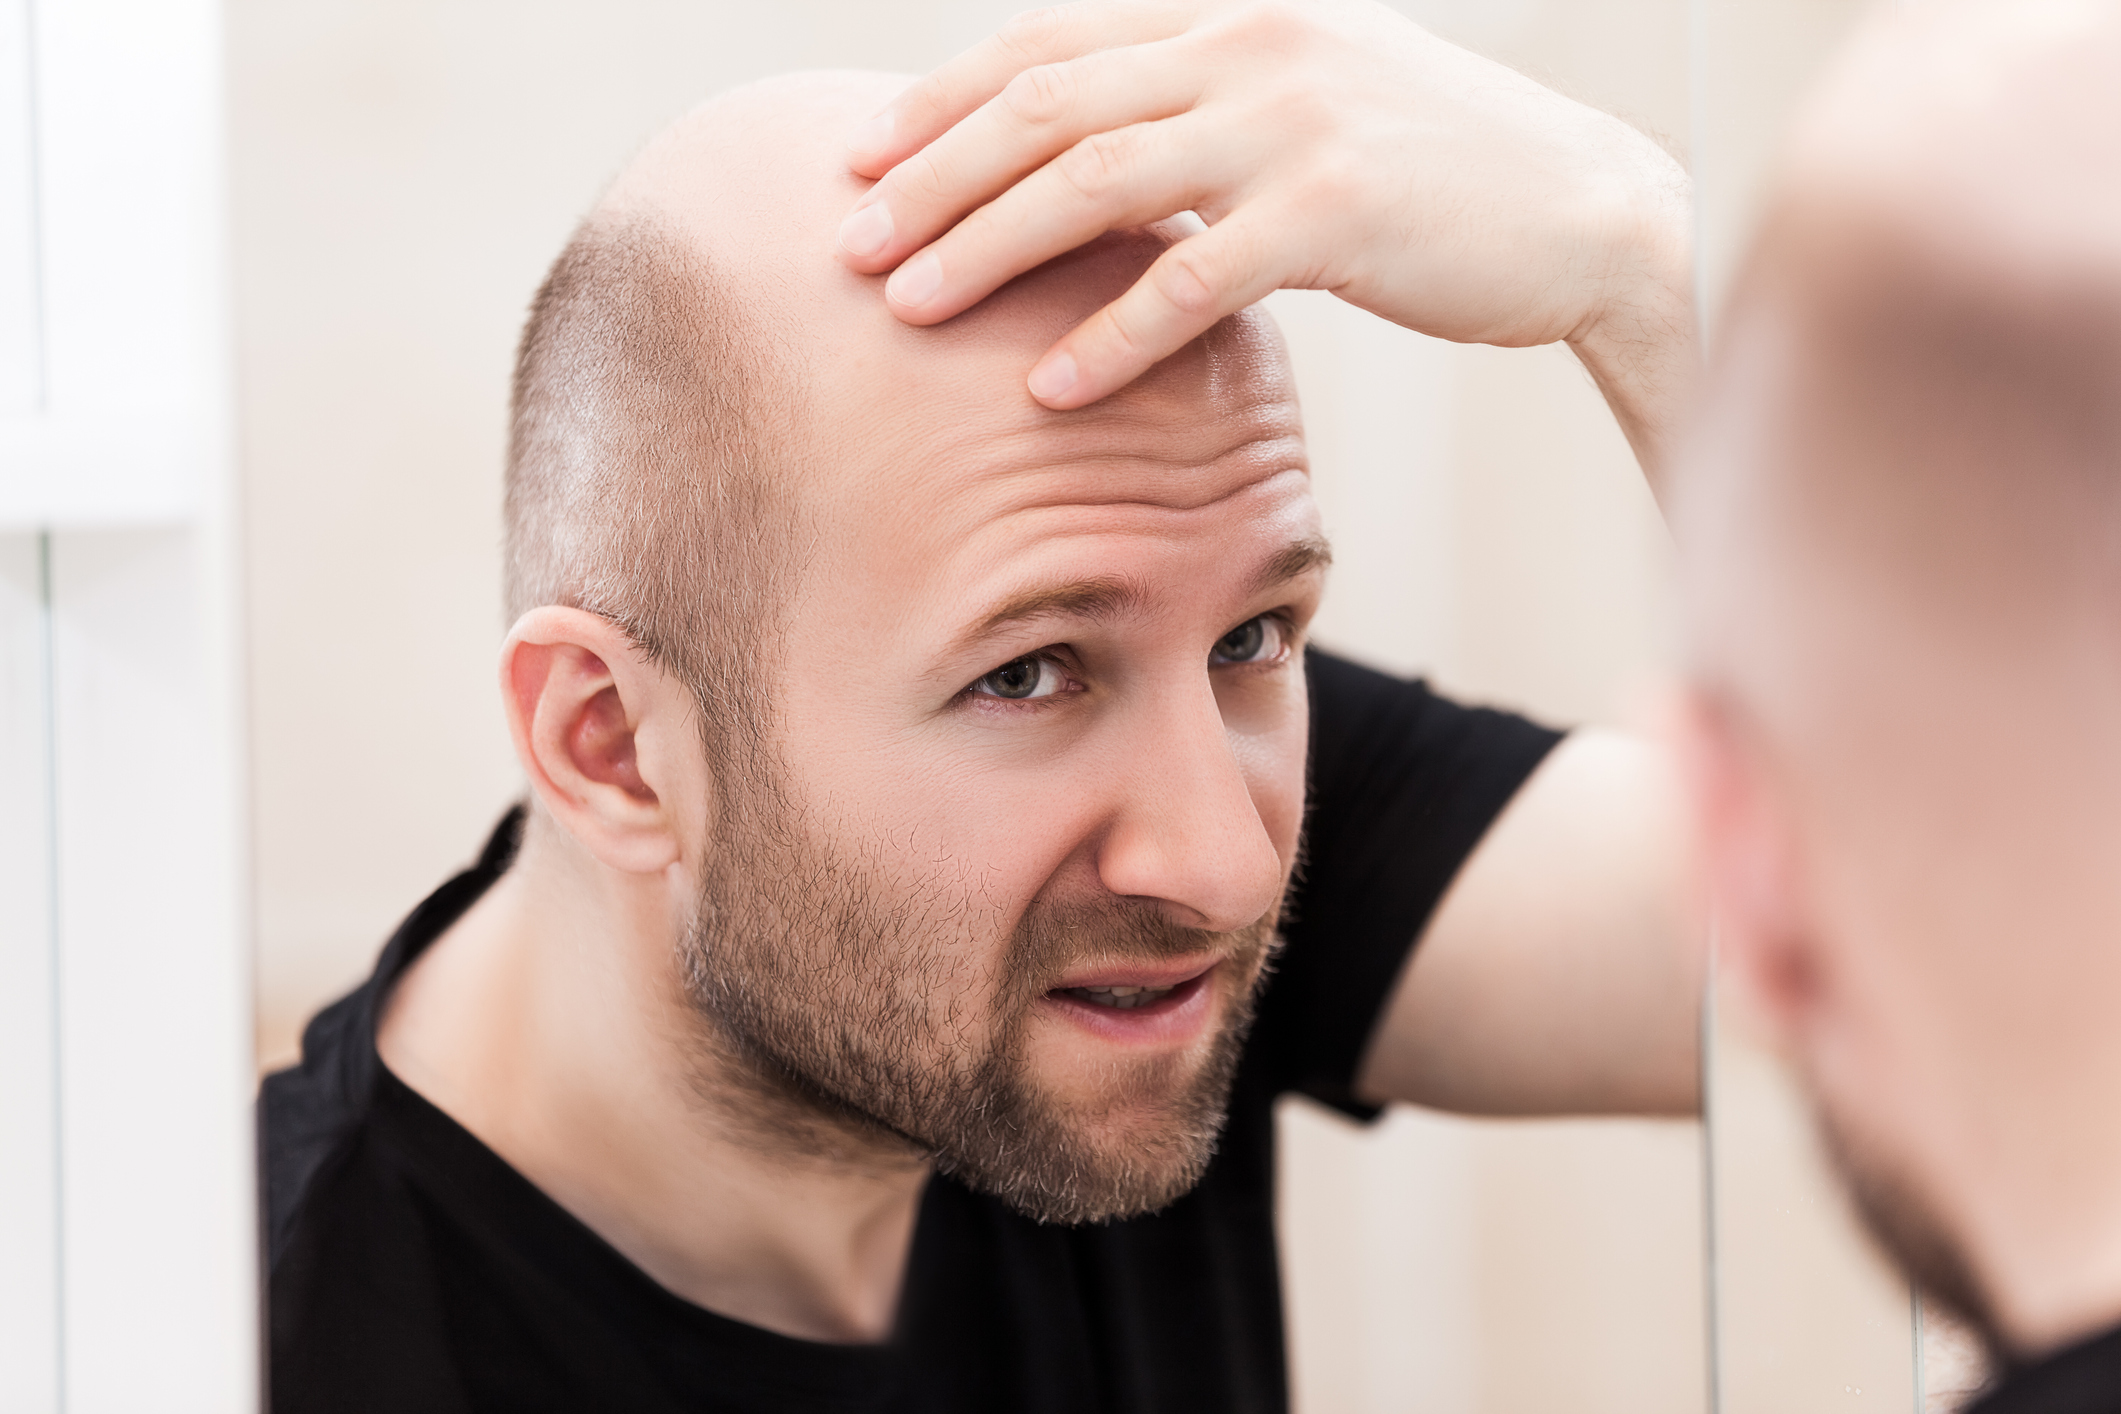 The diet that accelerates hair loss